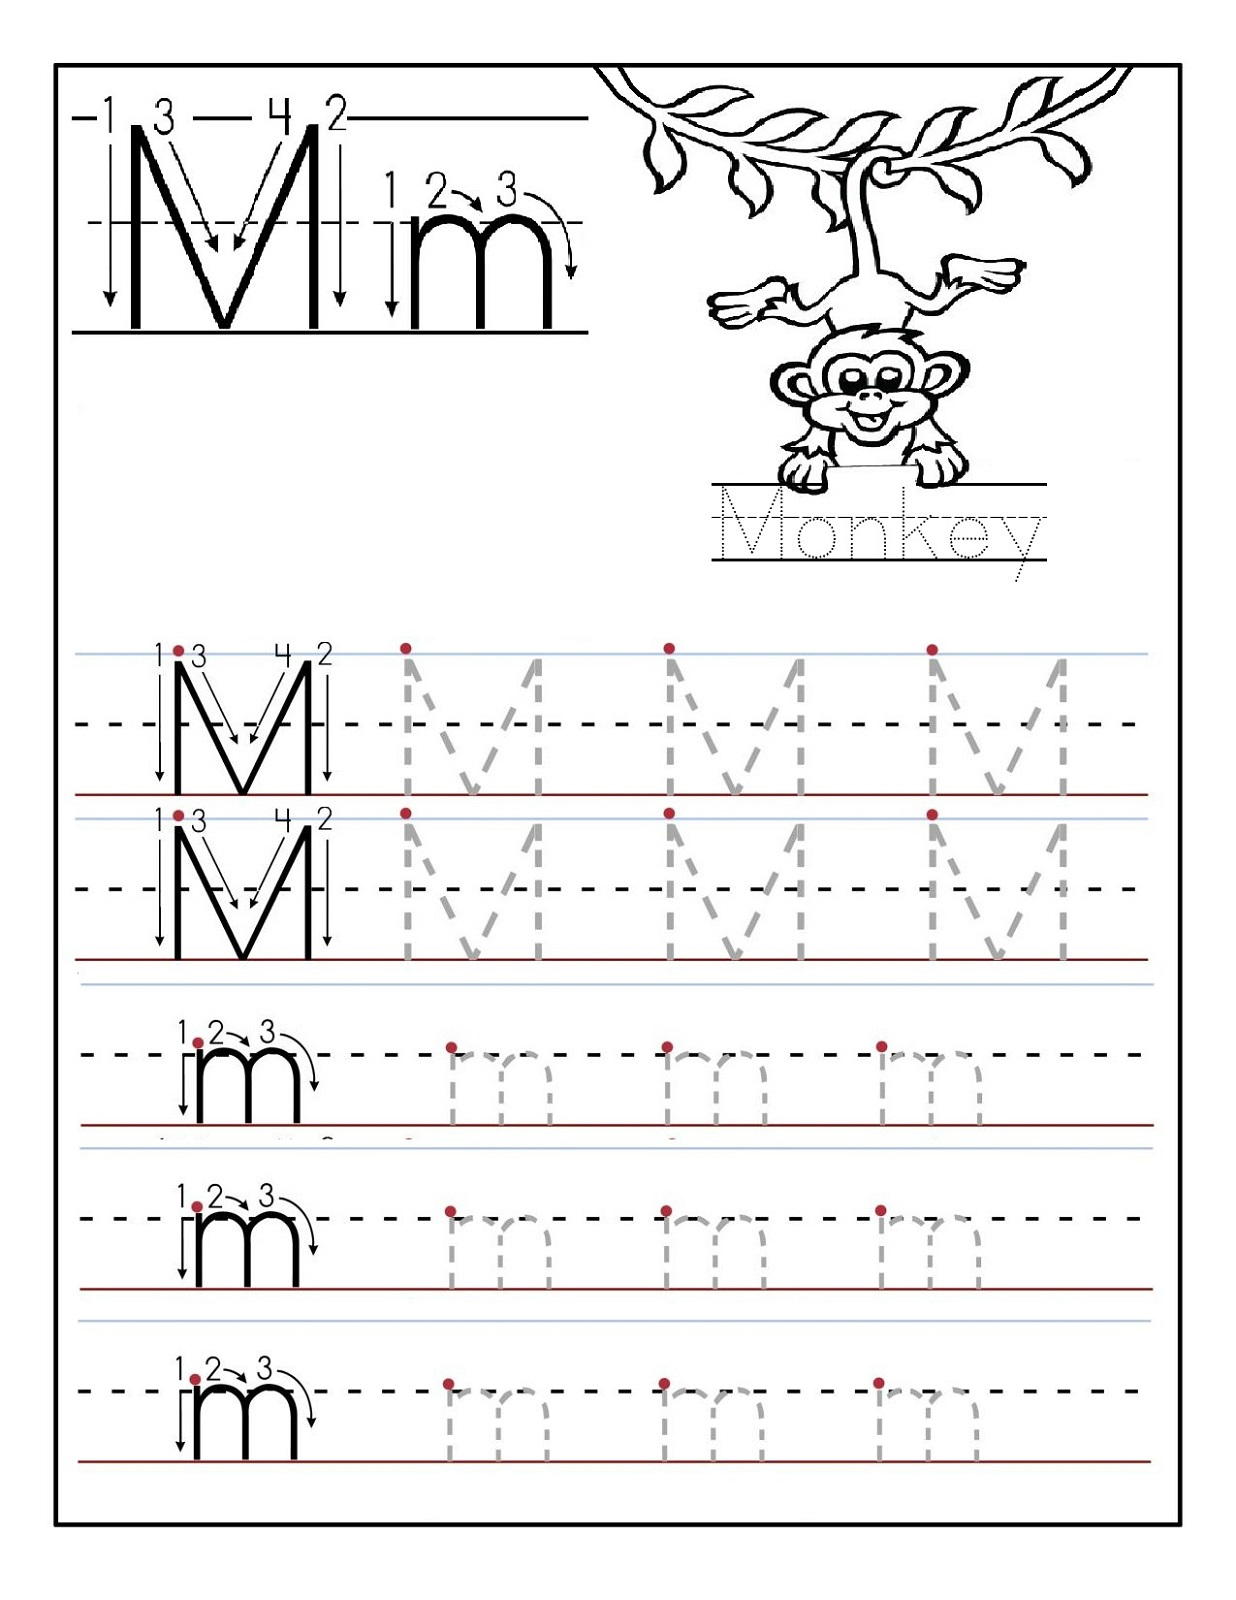 Preschool Printable Worksheets Alphabet